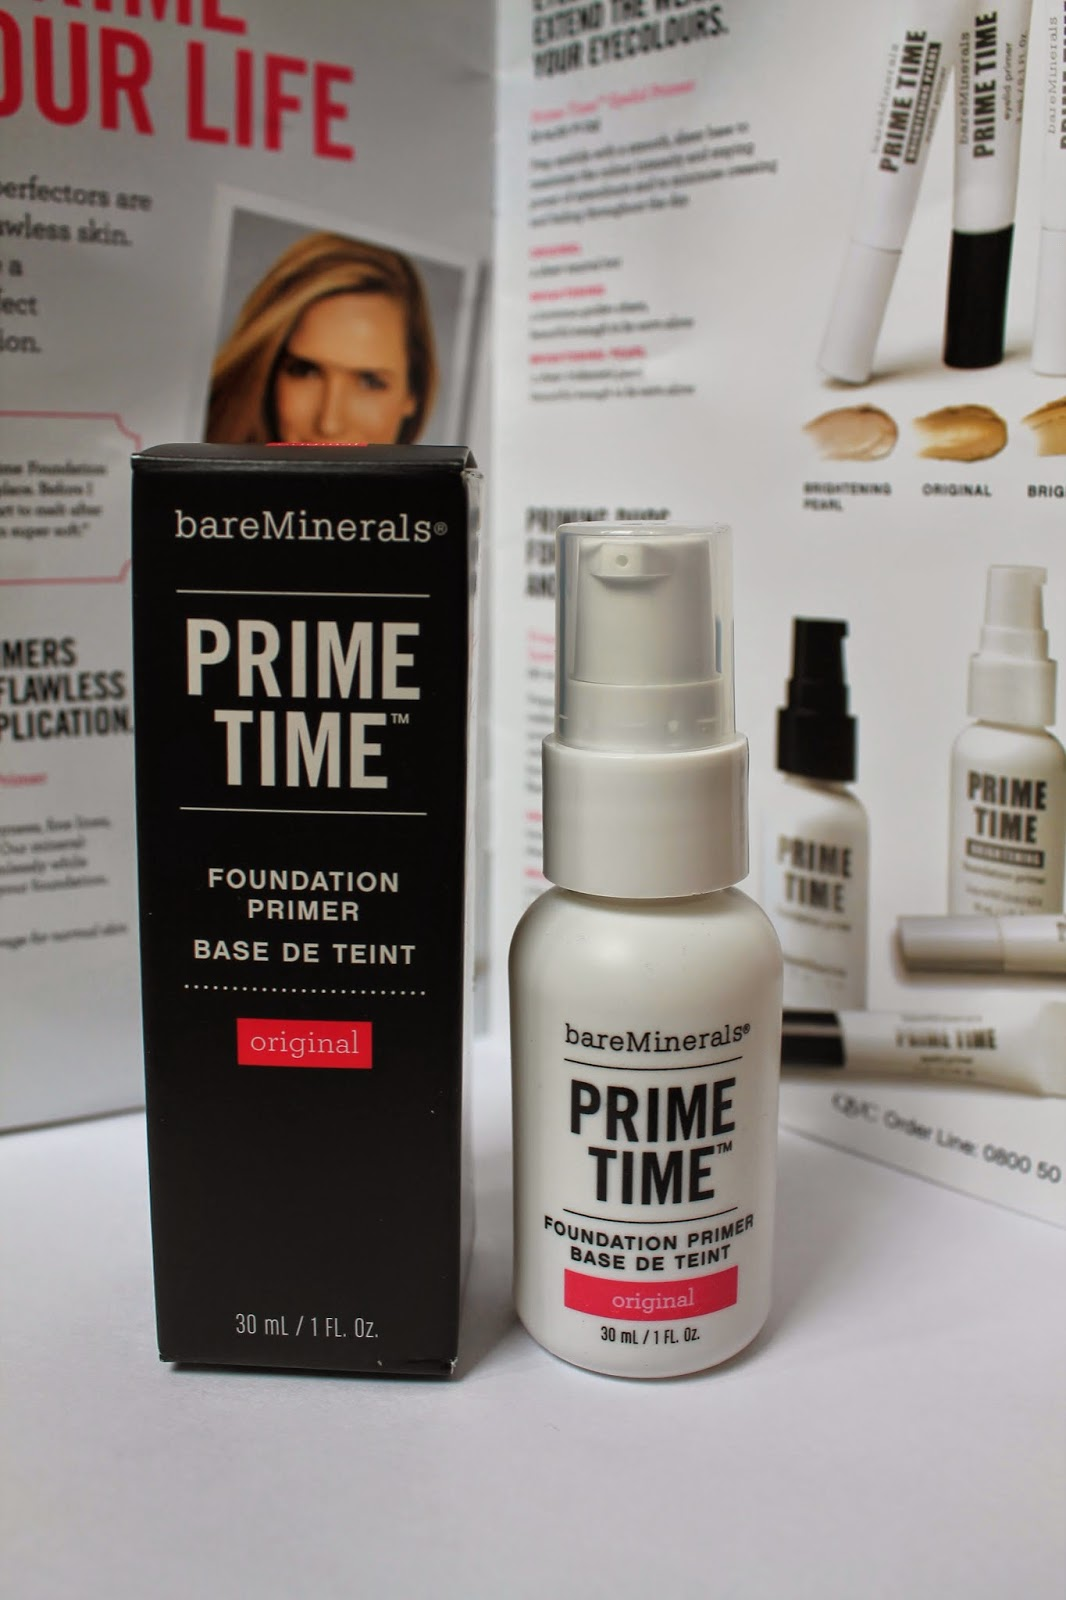 bareminerals Prime Time Primer review